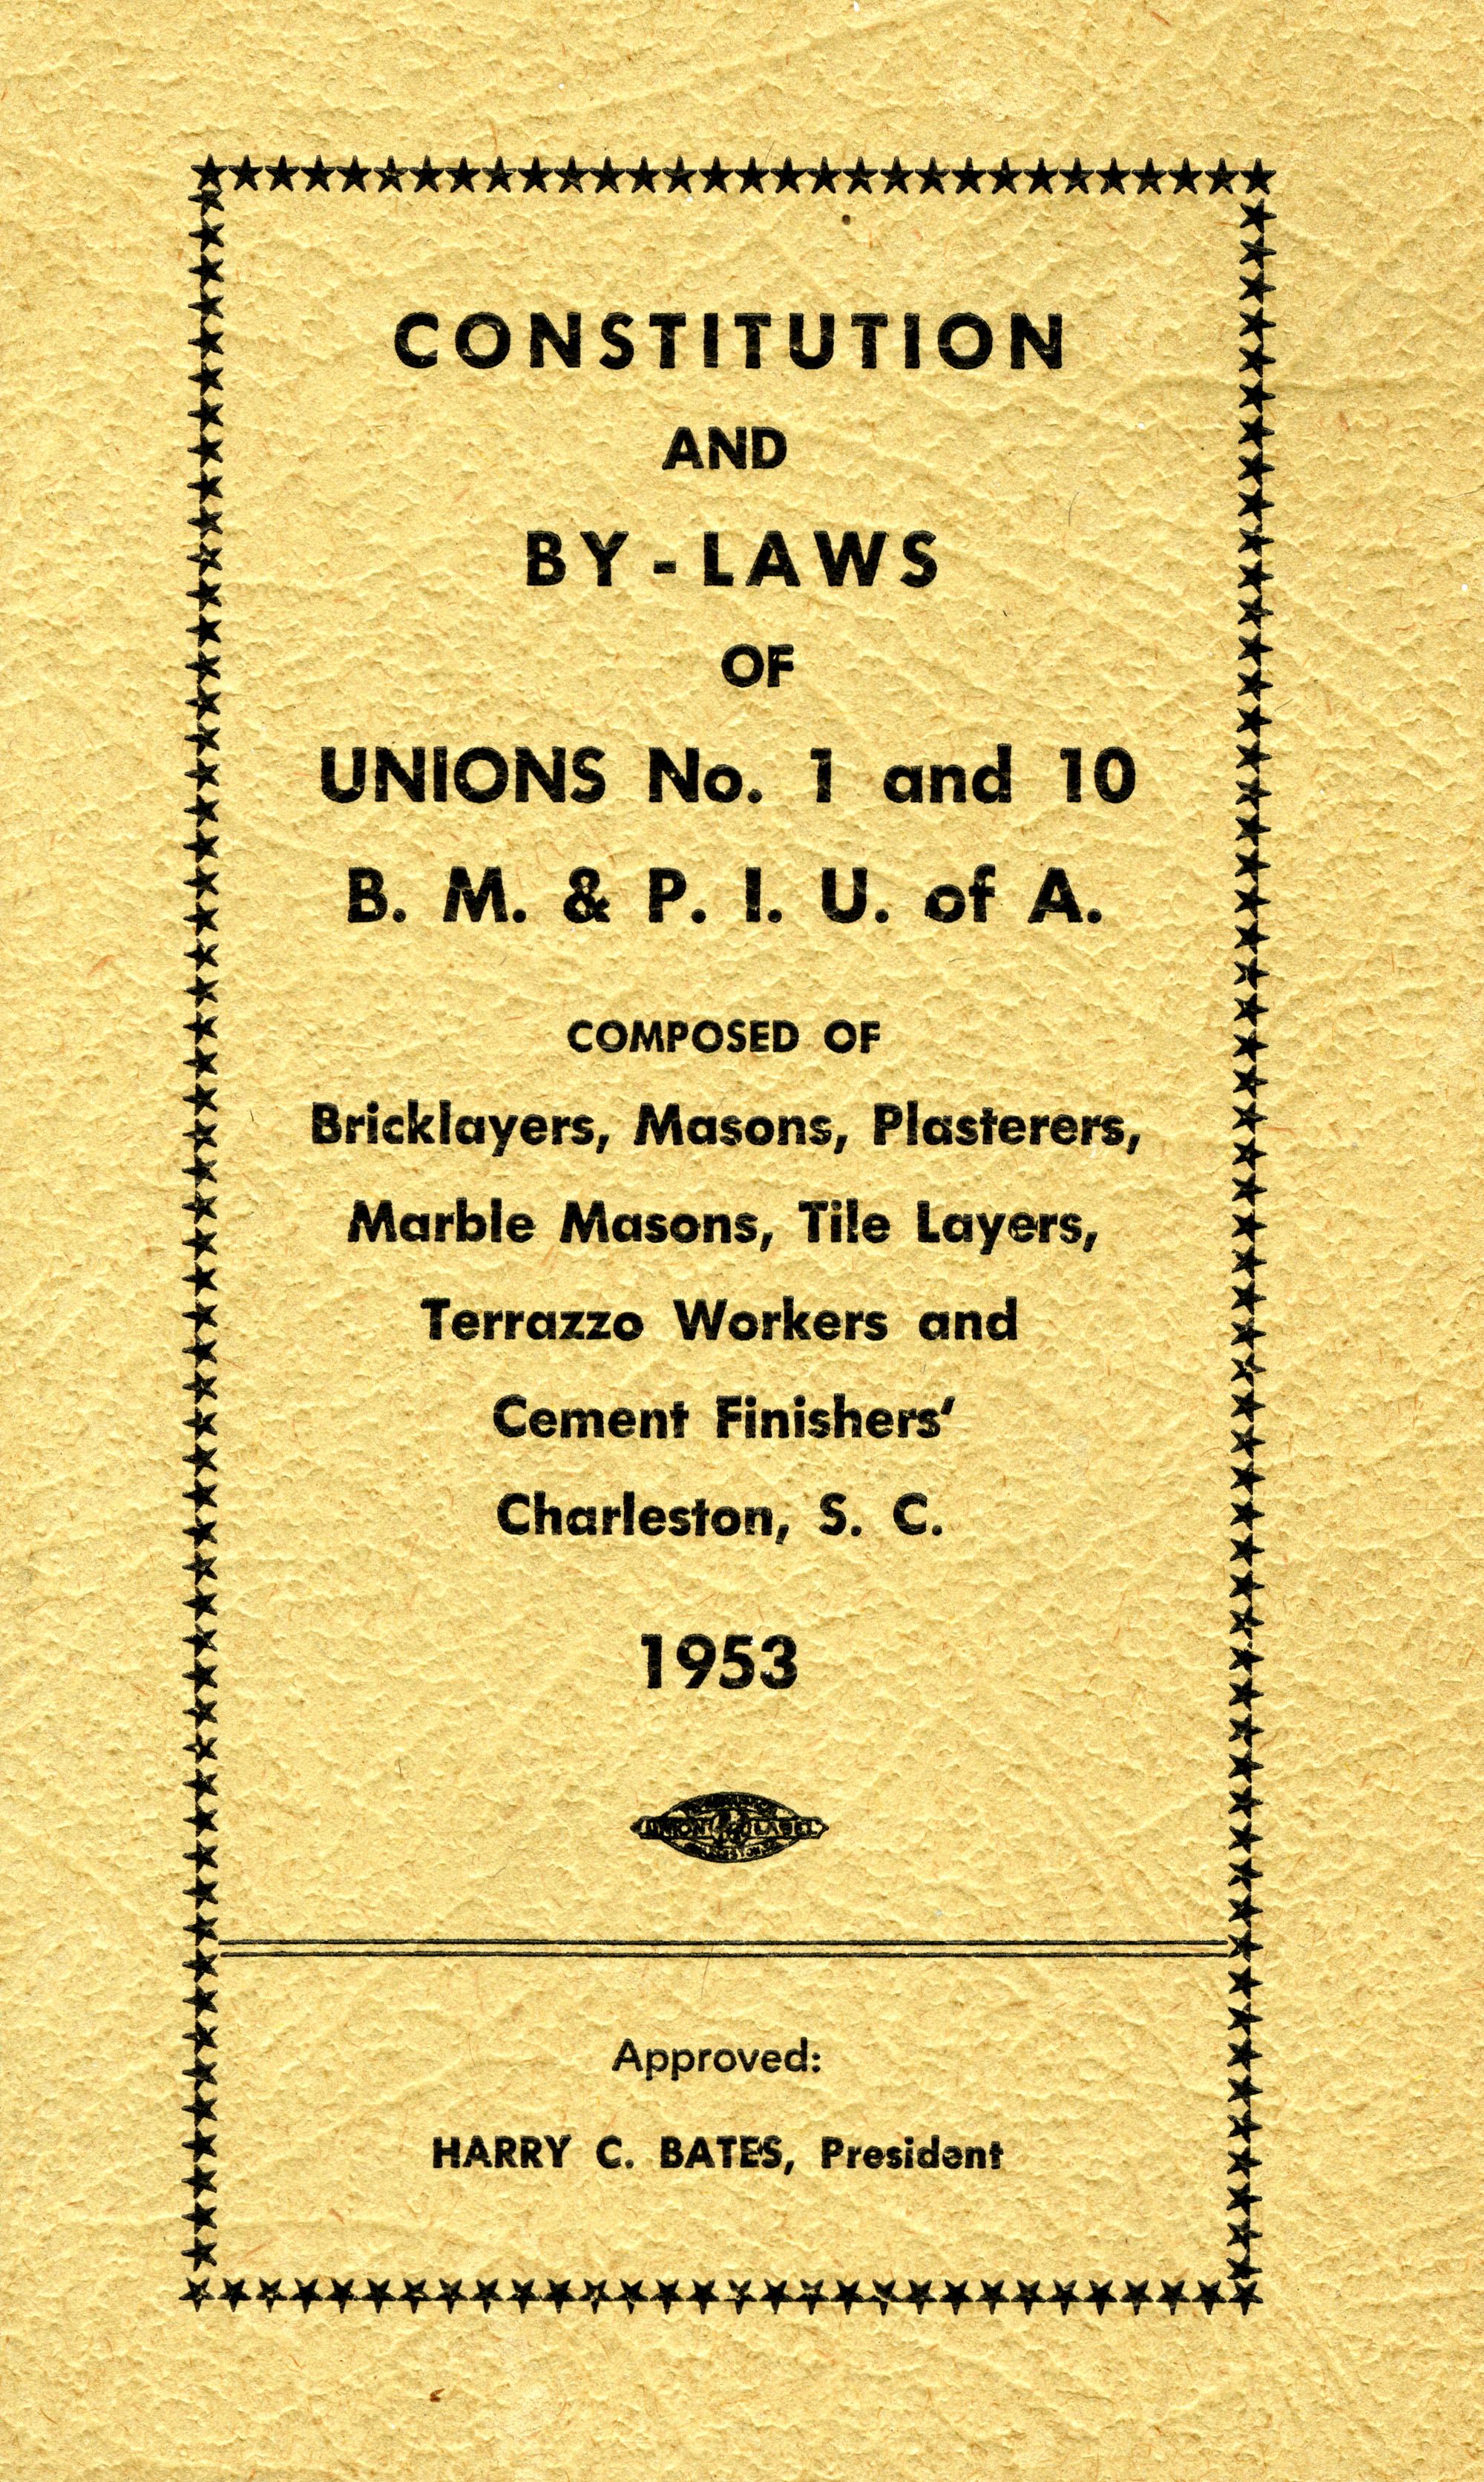 Constitution and by-laws of unions no.1 and 10